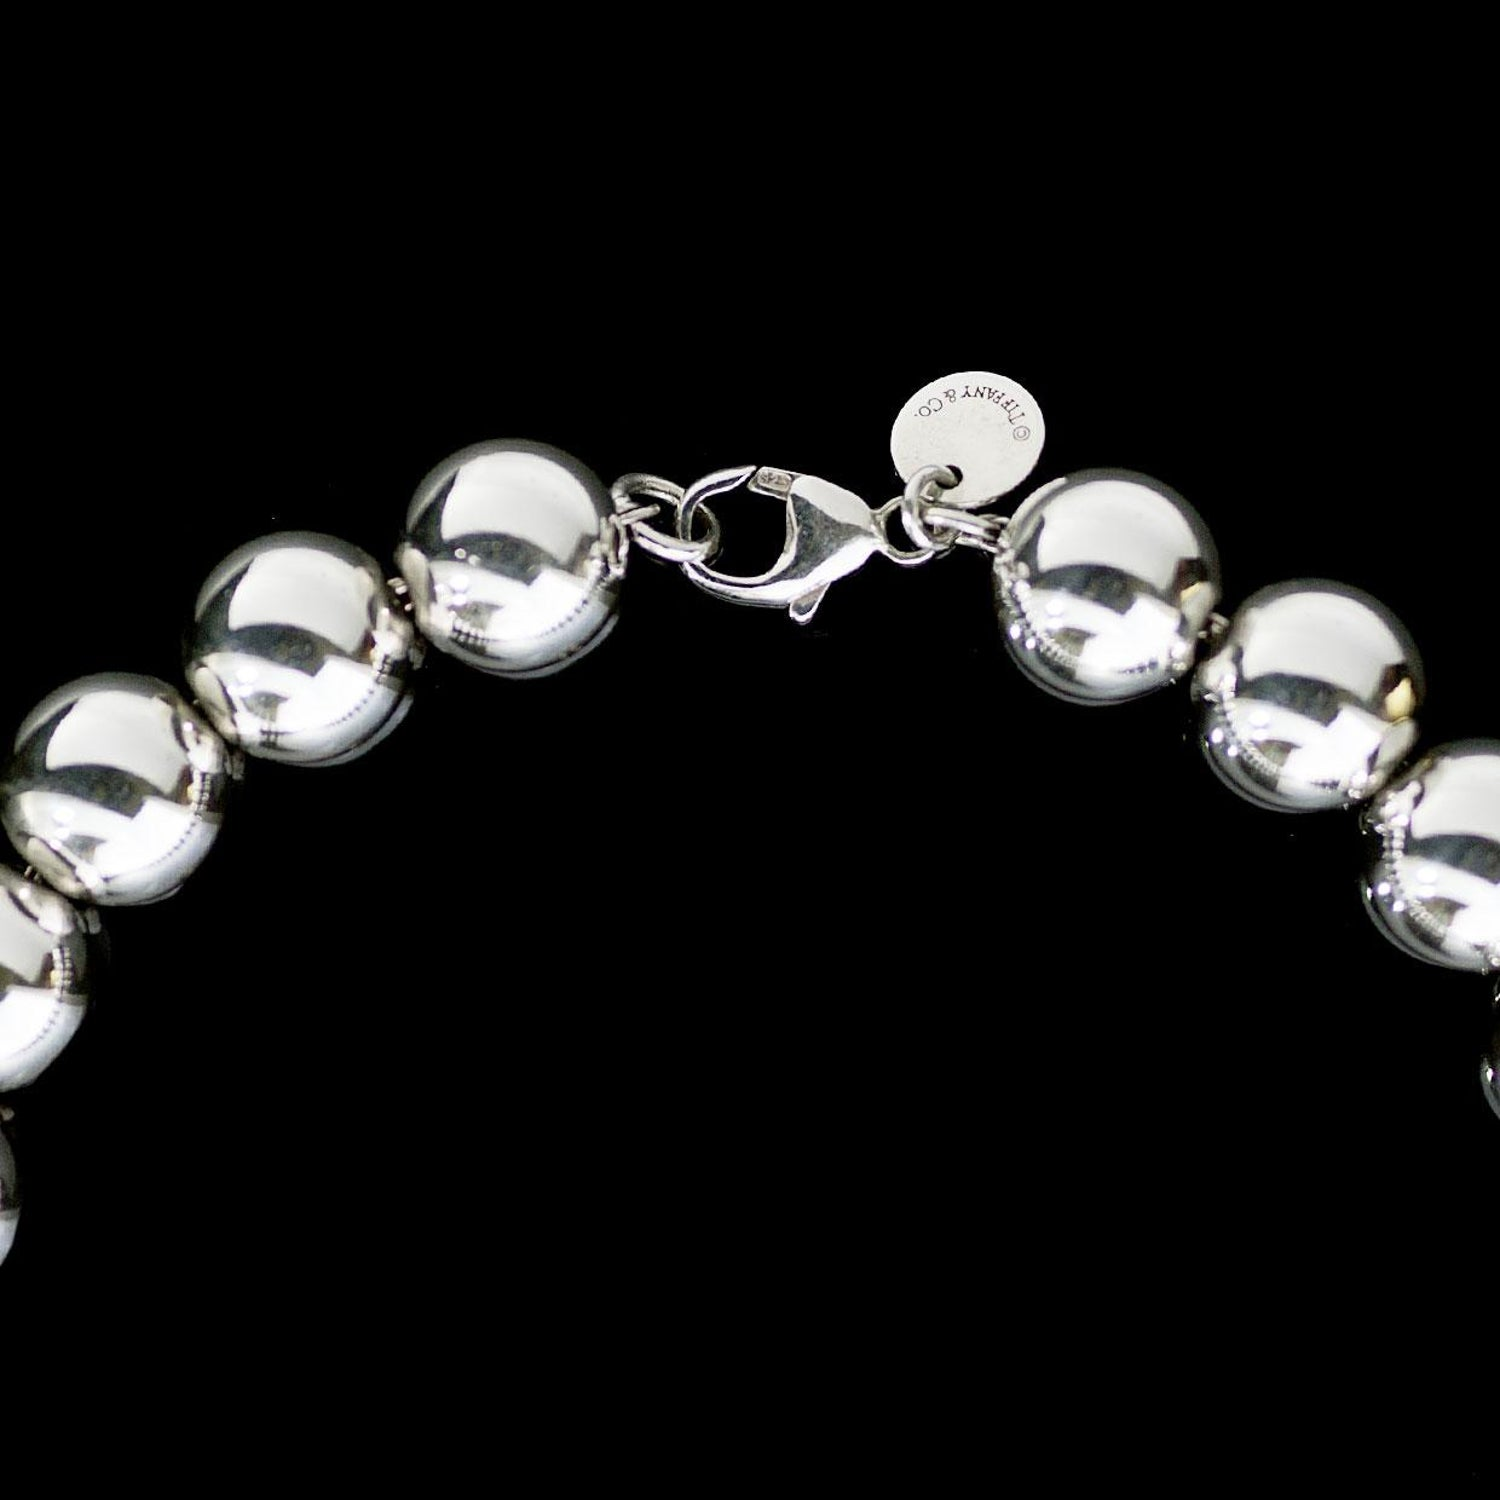 039162fe3 Tiffany and Co. HardWear Sterling Silver Bead Ball Chain Necklace at 1stdibs